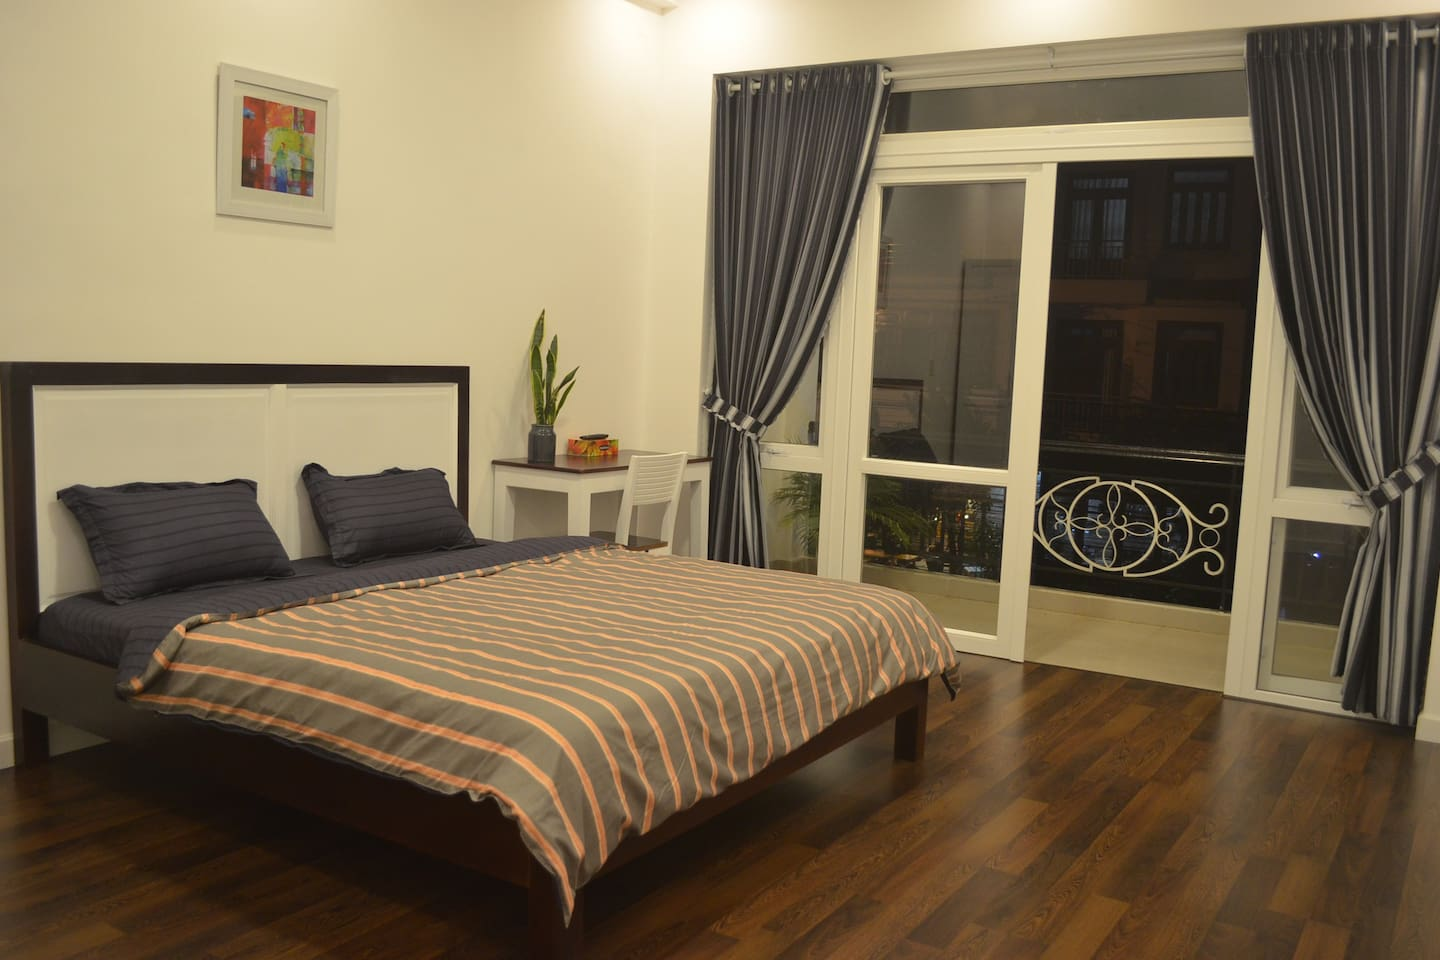 Welcome to our family home in central Dalat.